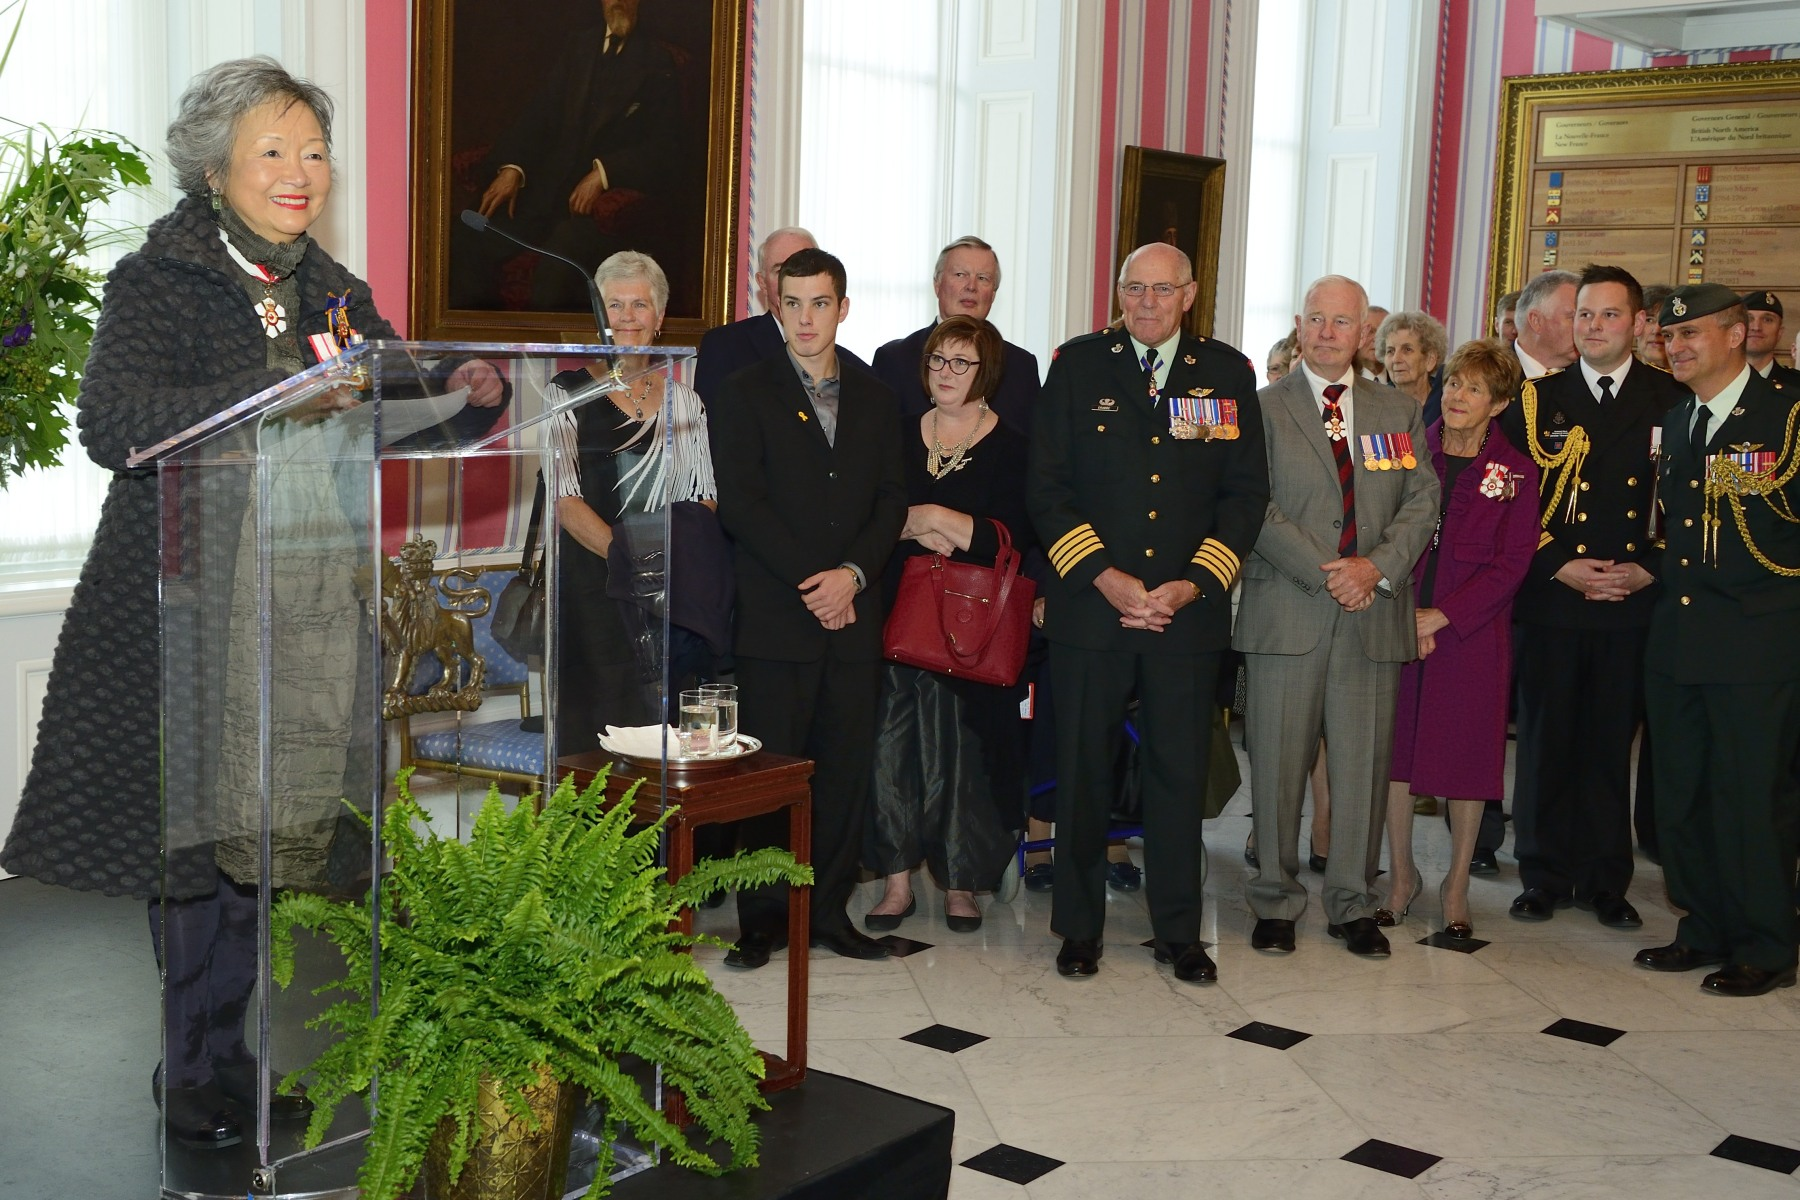 The Right Honourable Adrienne Clarkson, Colonel-in-Chief of the PPCLI and 26th governor general of Canada, also delivered remarks to former and current members of the PPCLI in the Tent Room. Mrs. Adrienne Clarkson became the first Canadian Colonel-in-Chief of PPCLI on March 17, 2007.